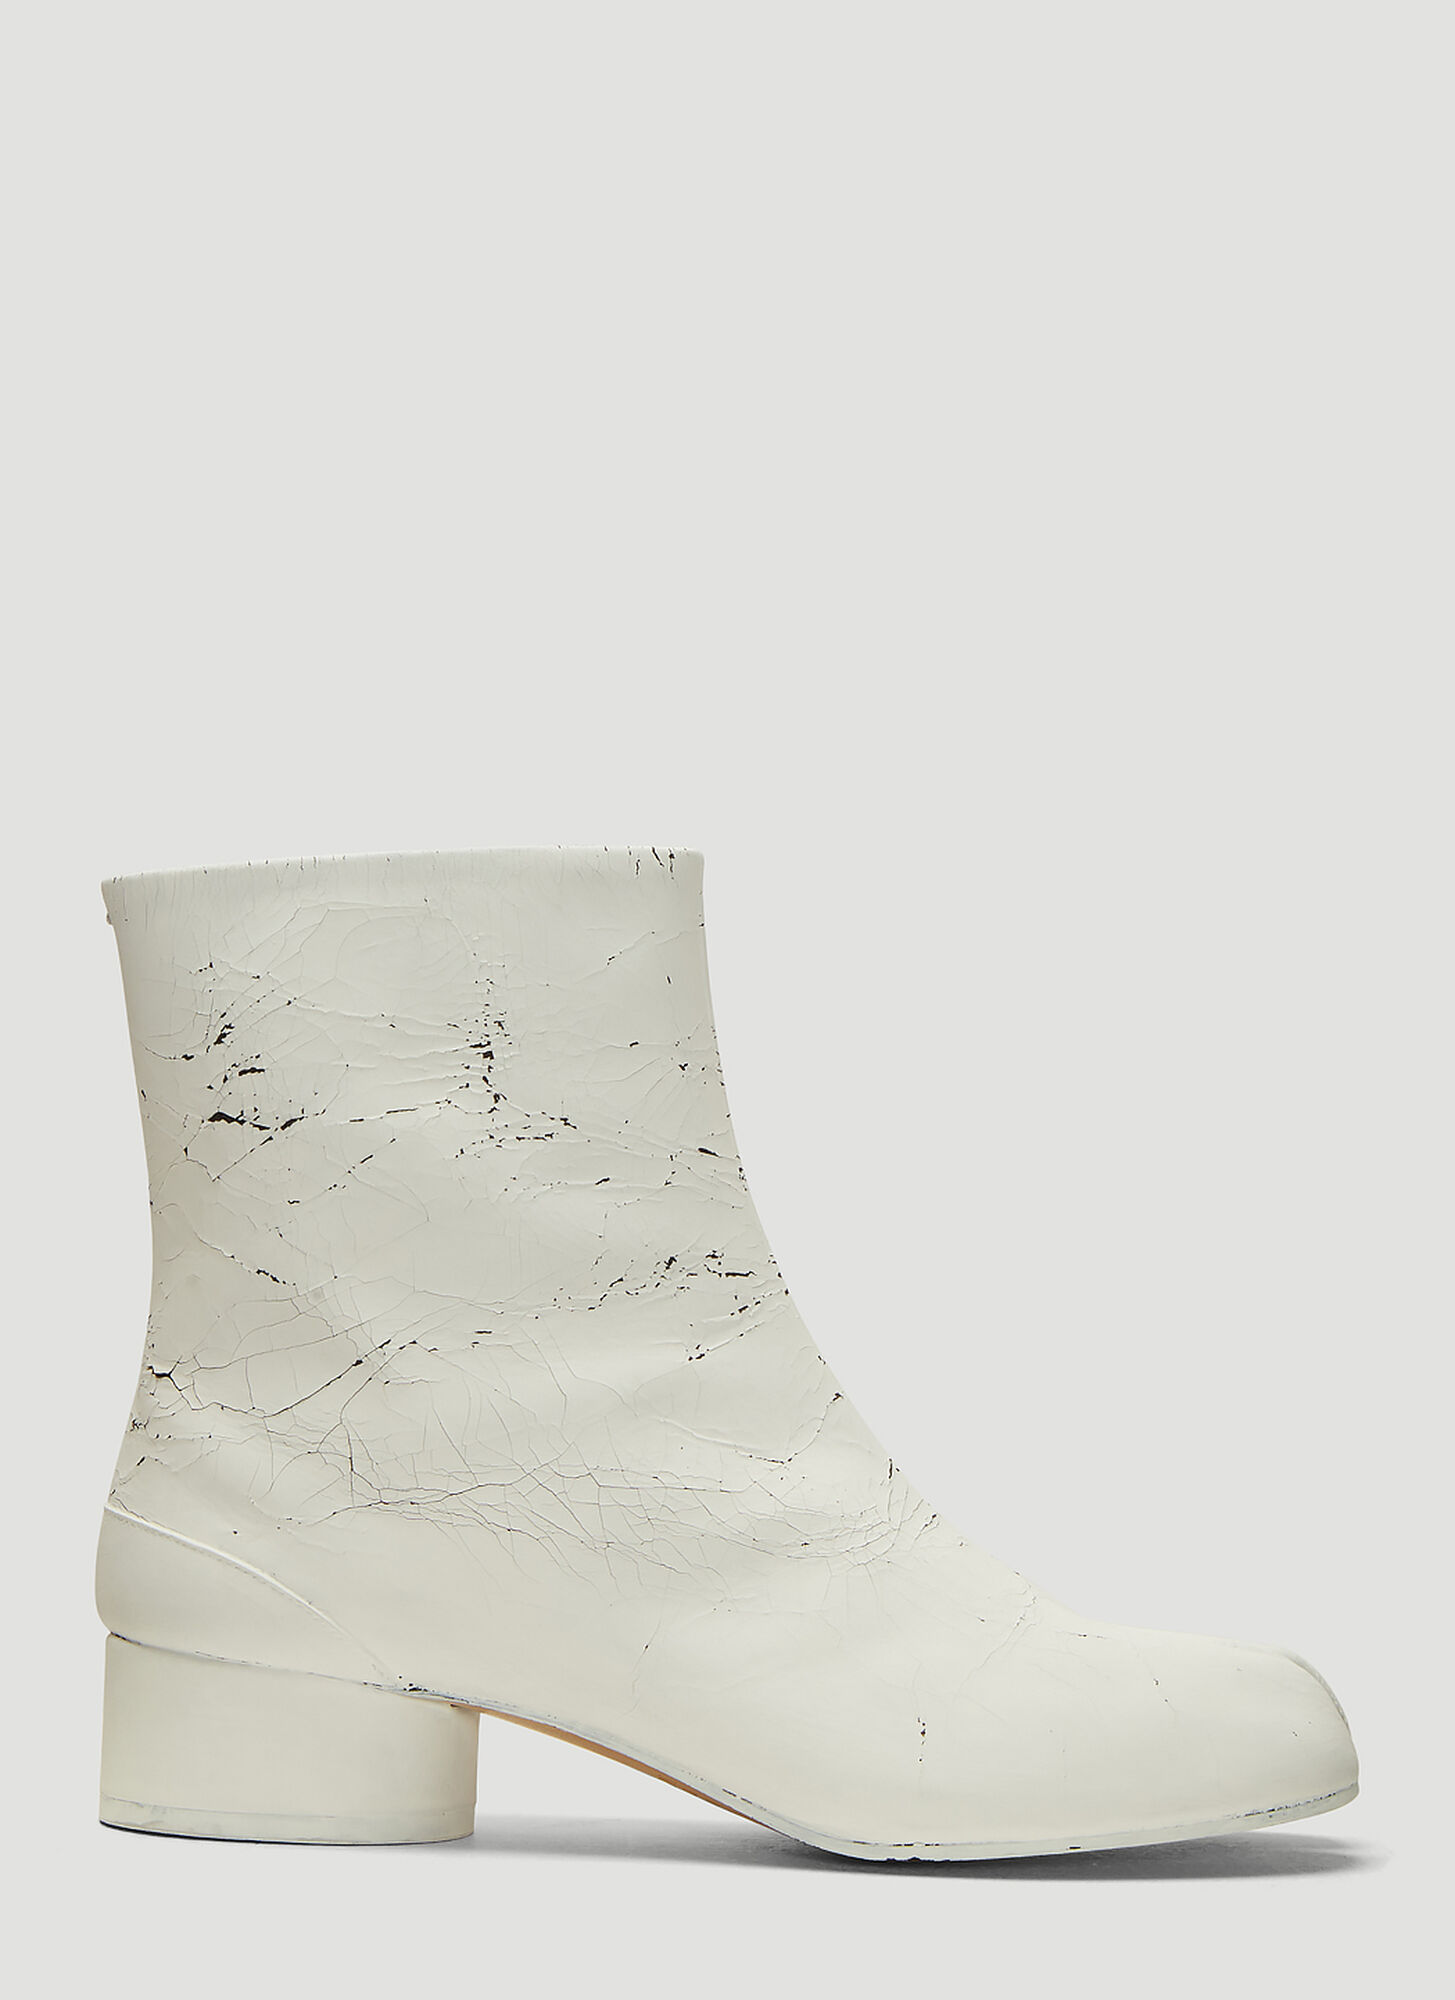 Maison Margiela Cracked Paint Tabi Ankle Boots in White